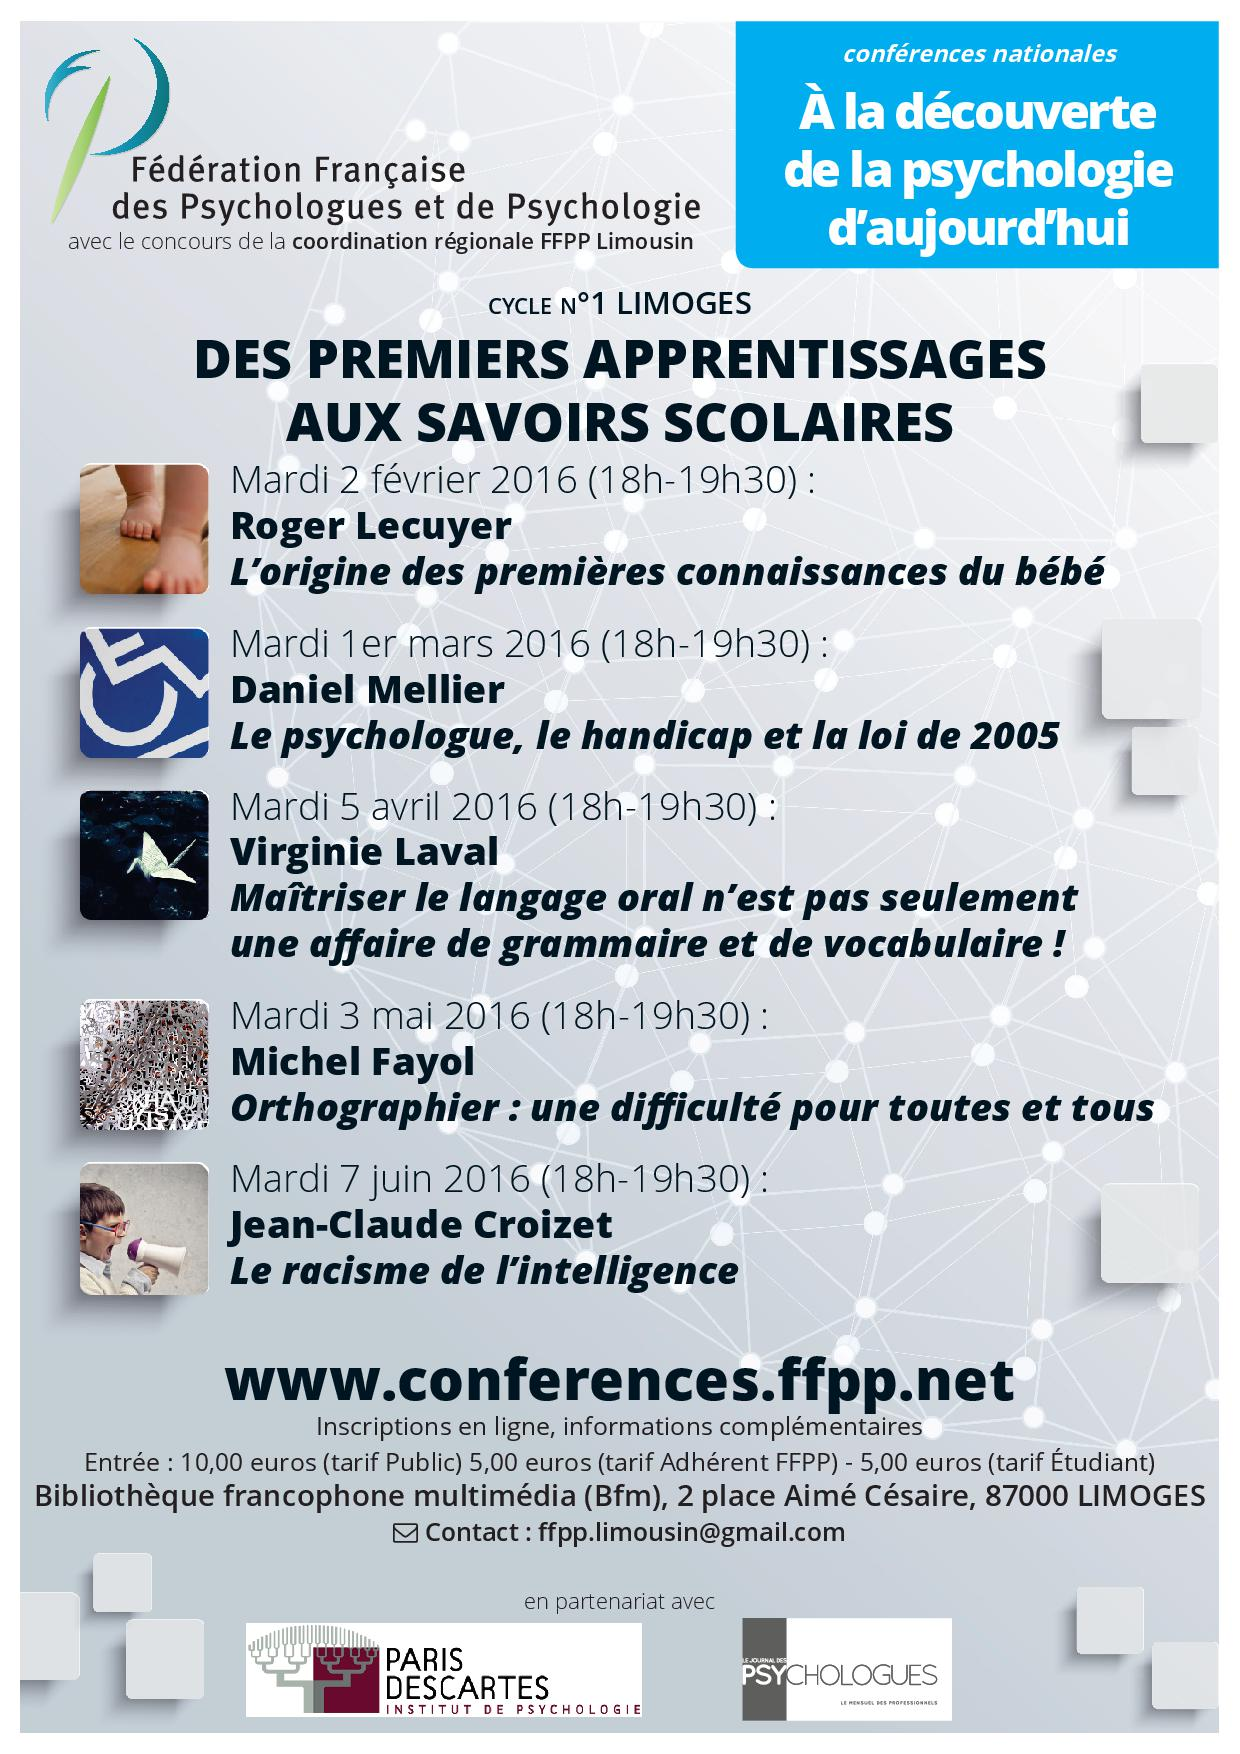 Affiche Conferences cycle 1 Limoges